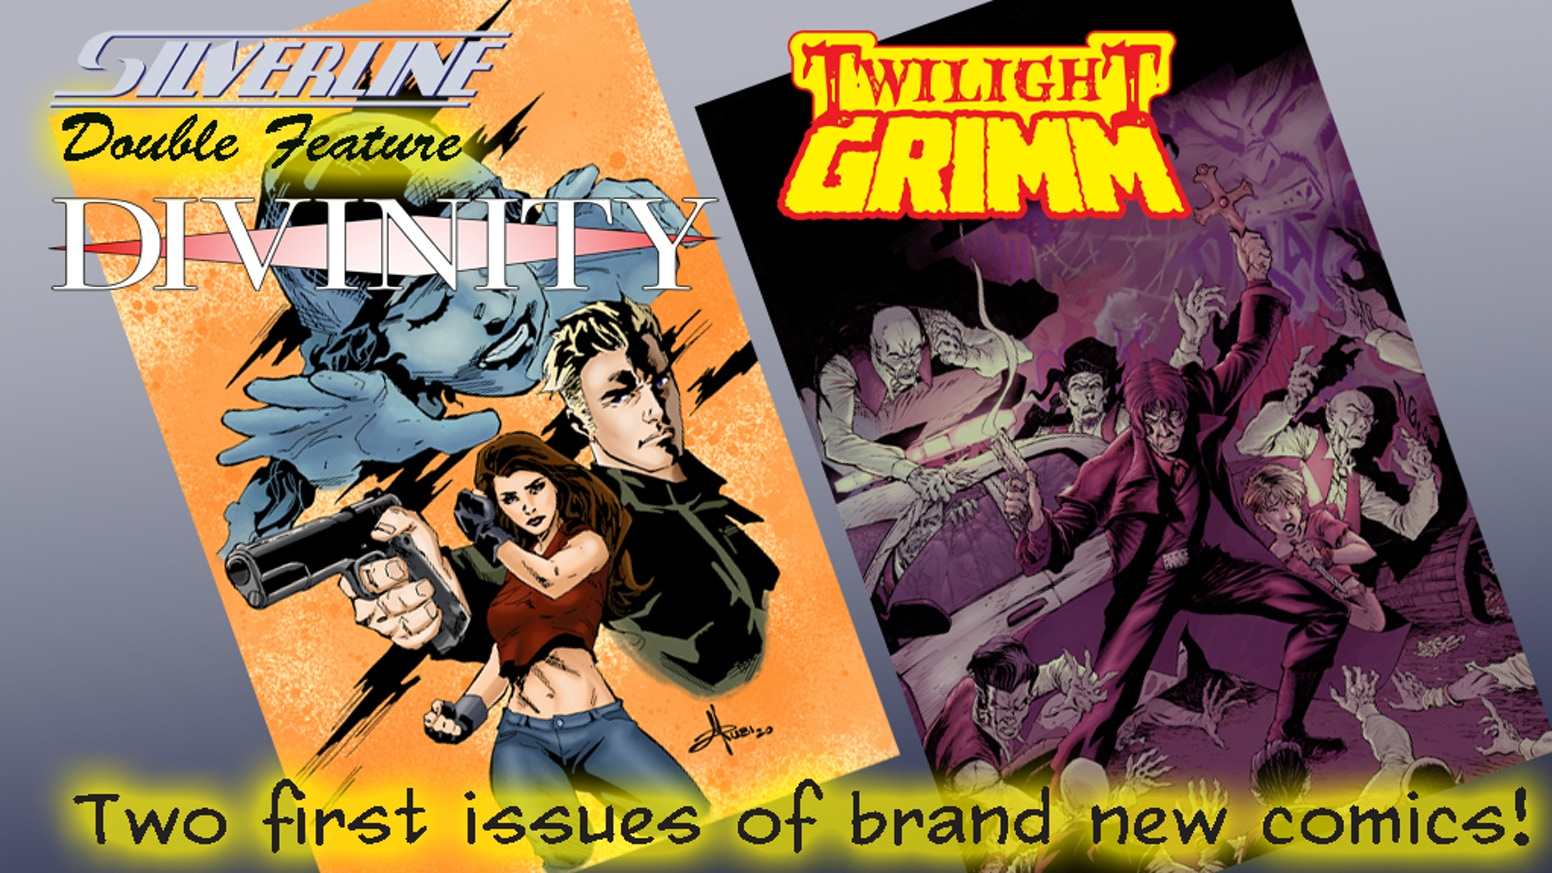 Two brand new titles from Silverline Comics